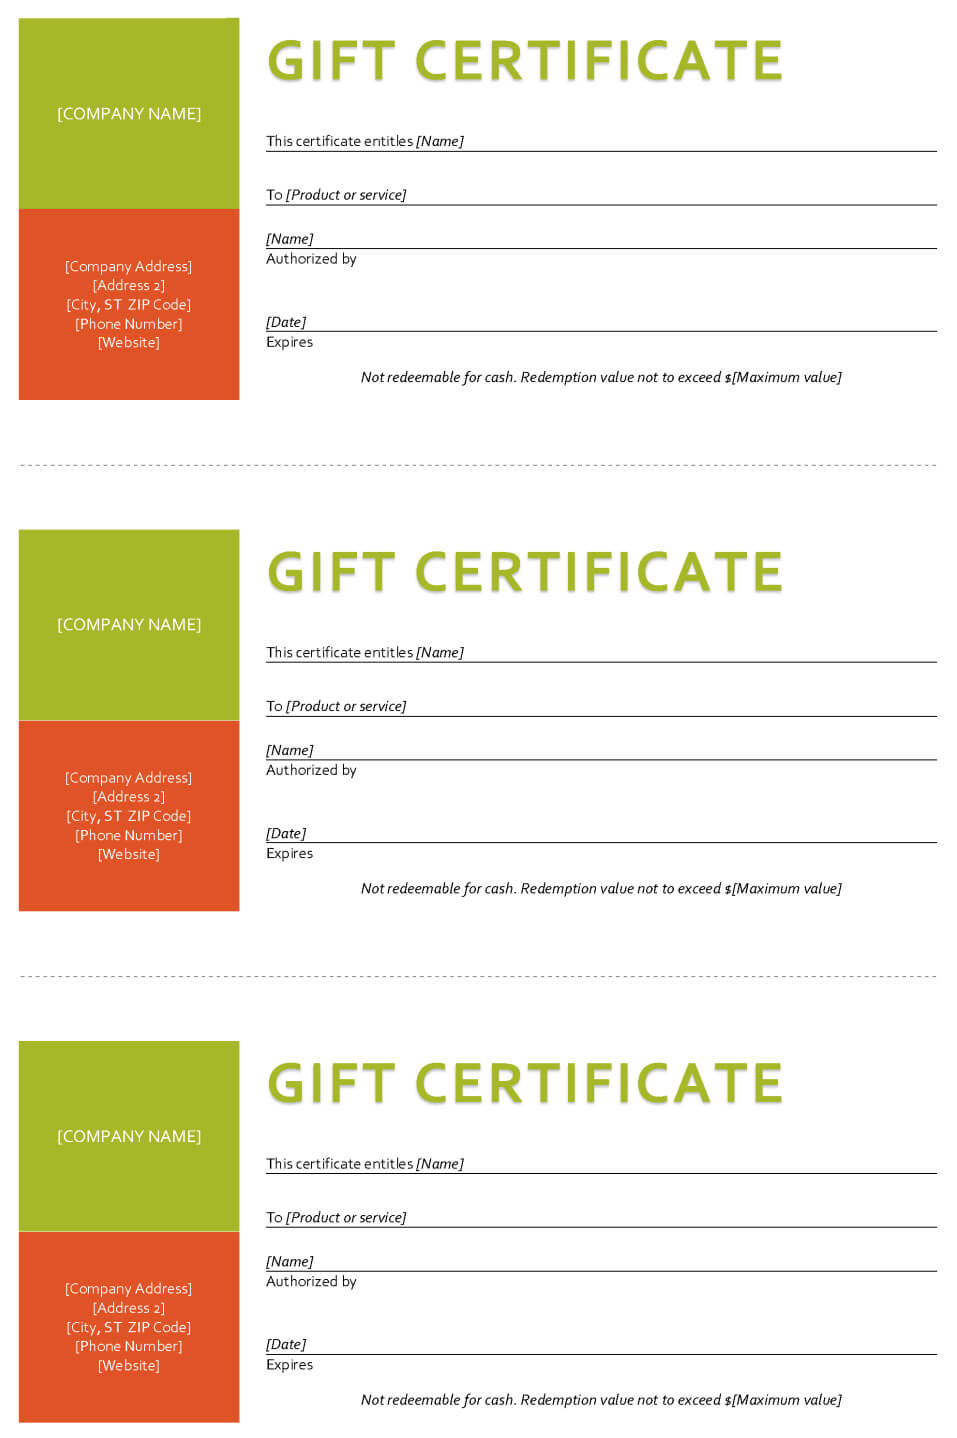 Gift Certificate Template - Sample Gift Certificate Inside Company Gift Certificate Template